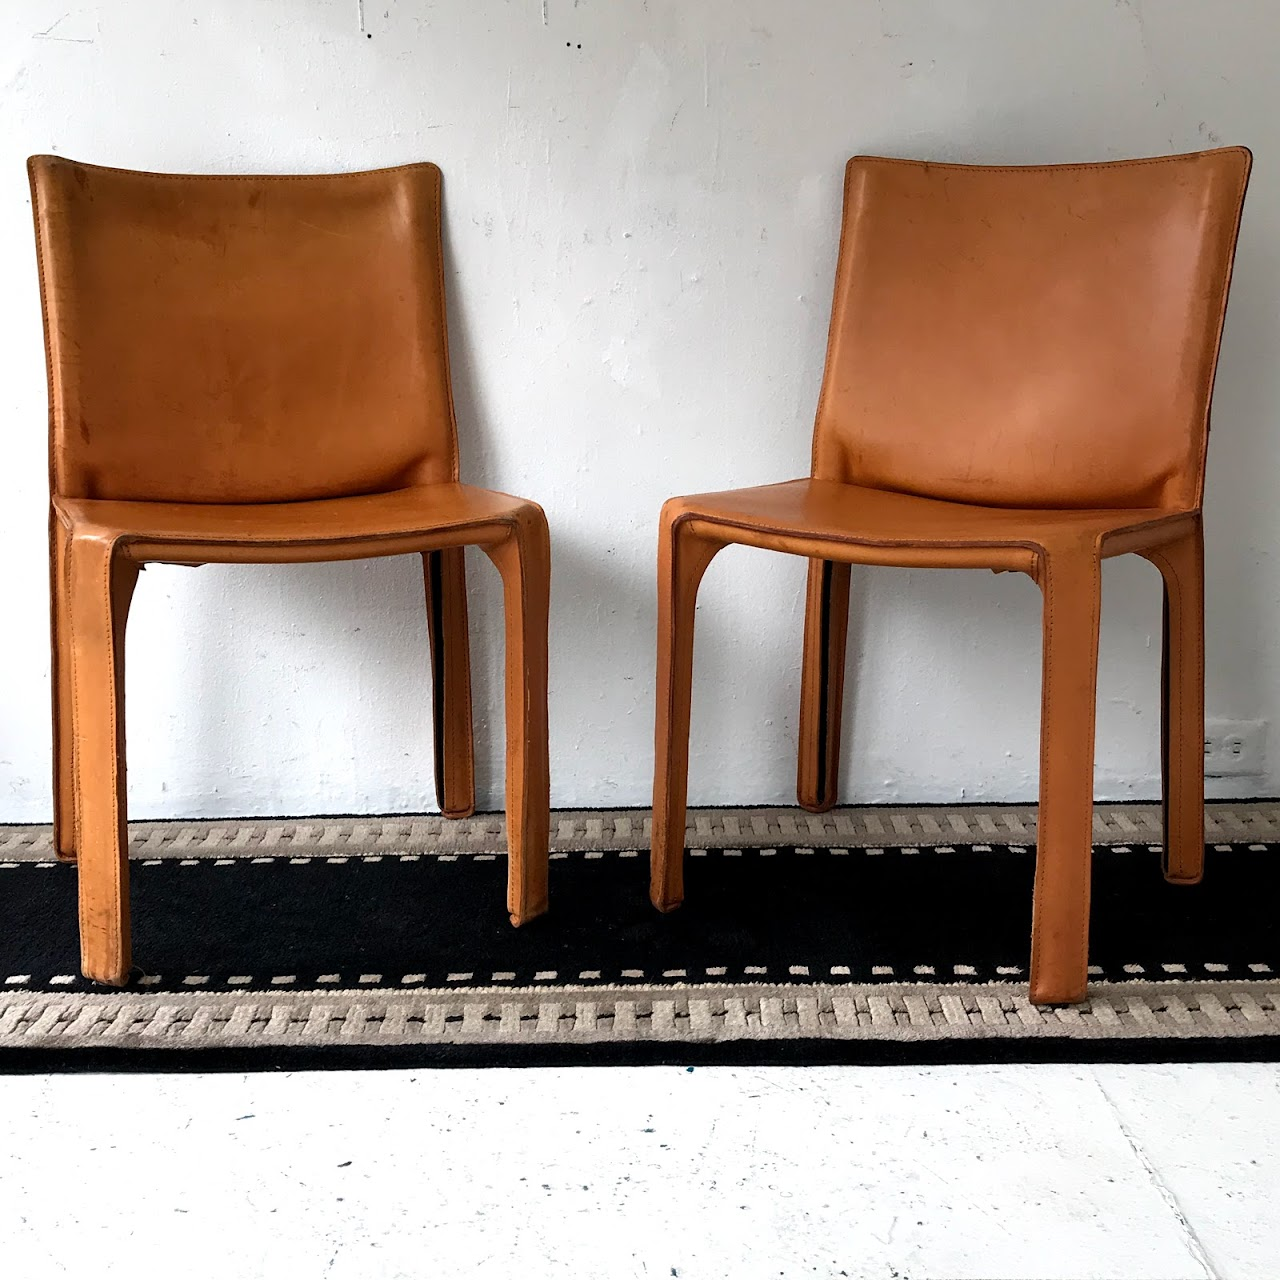 Stupendous Cassina Leather Cab Dining Chair Pair Shophousingworks Ocoug Best Dining Table And Chair Ideas Images Ocougorg